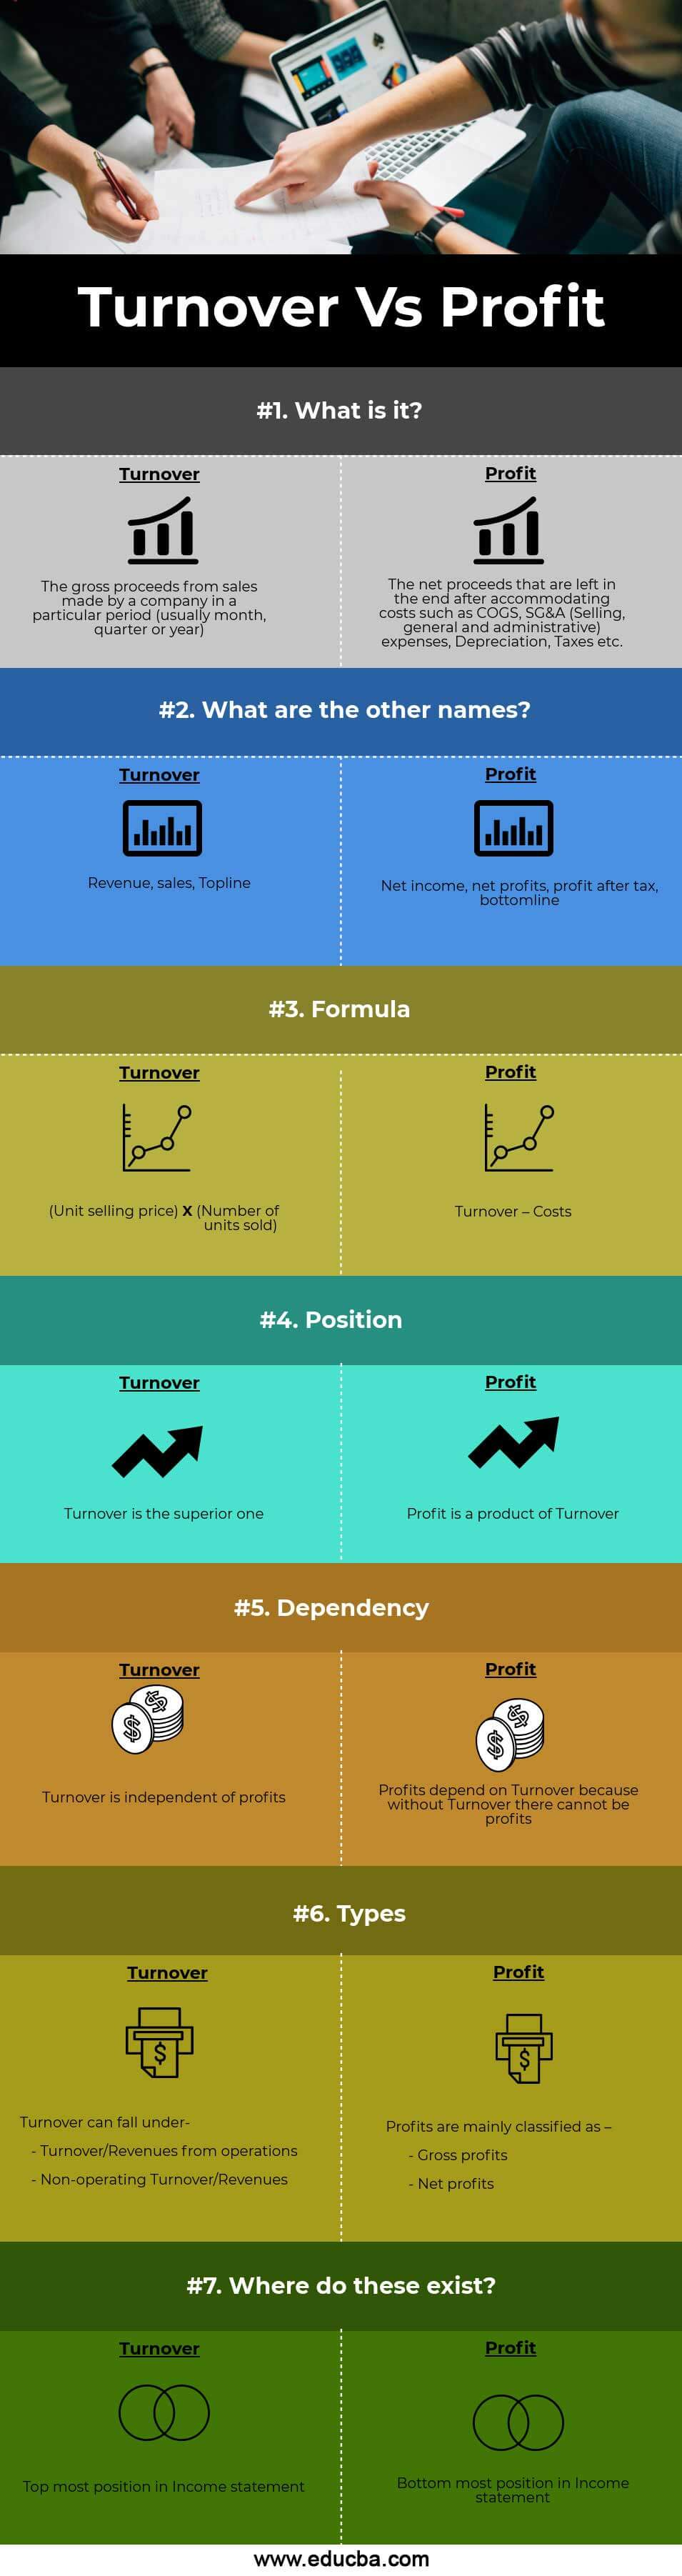 Turnover vs Profit(info)